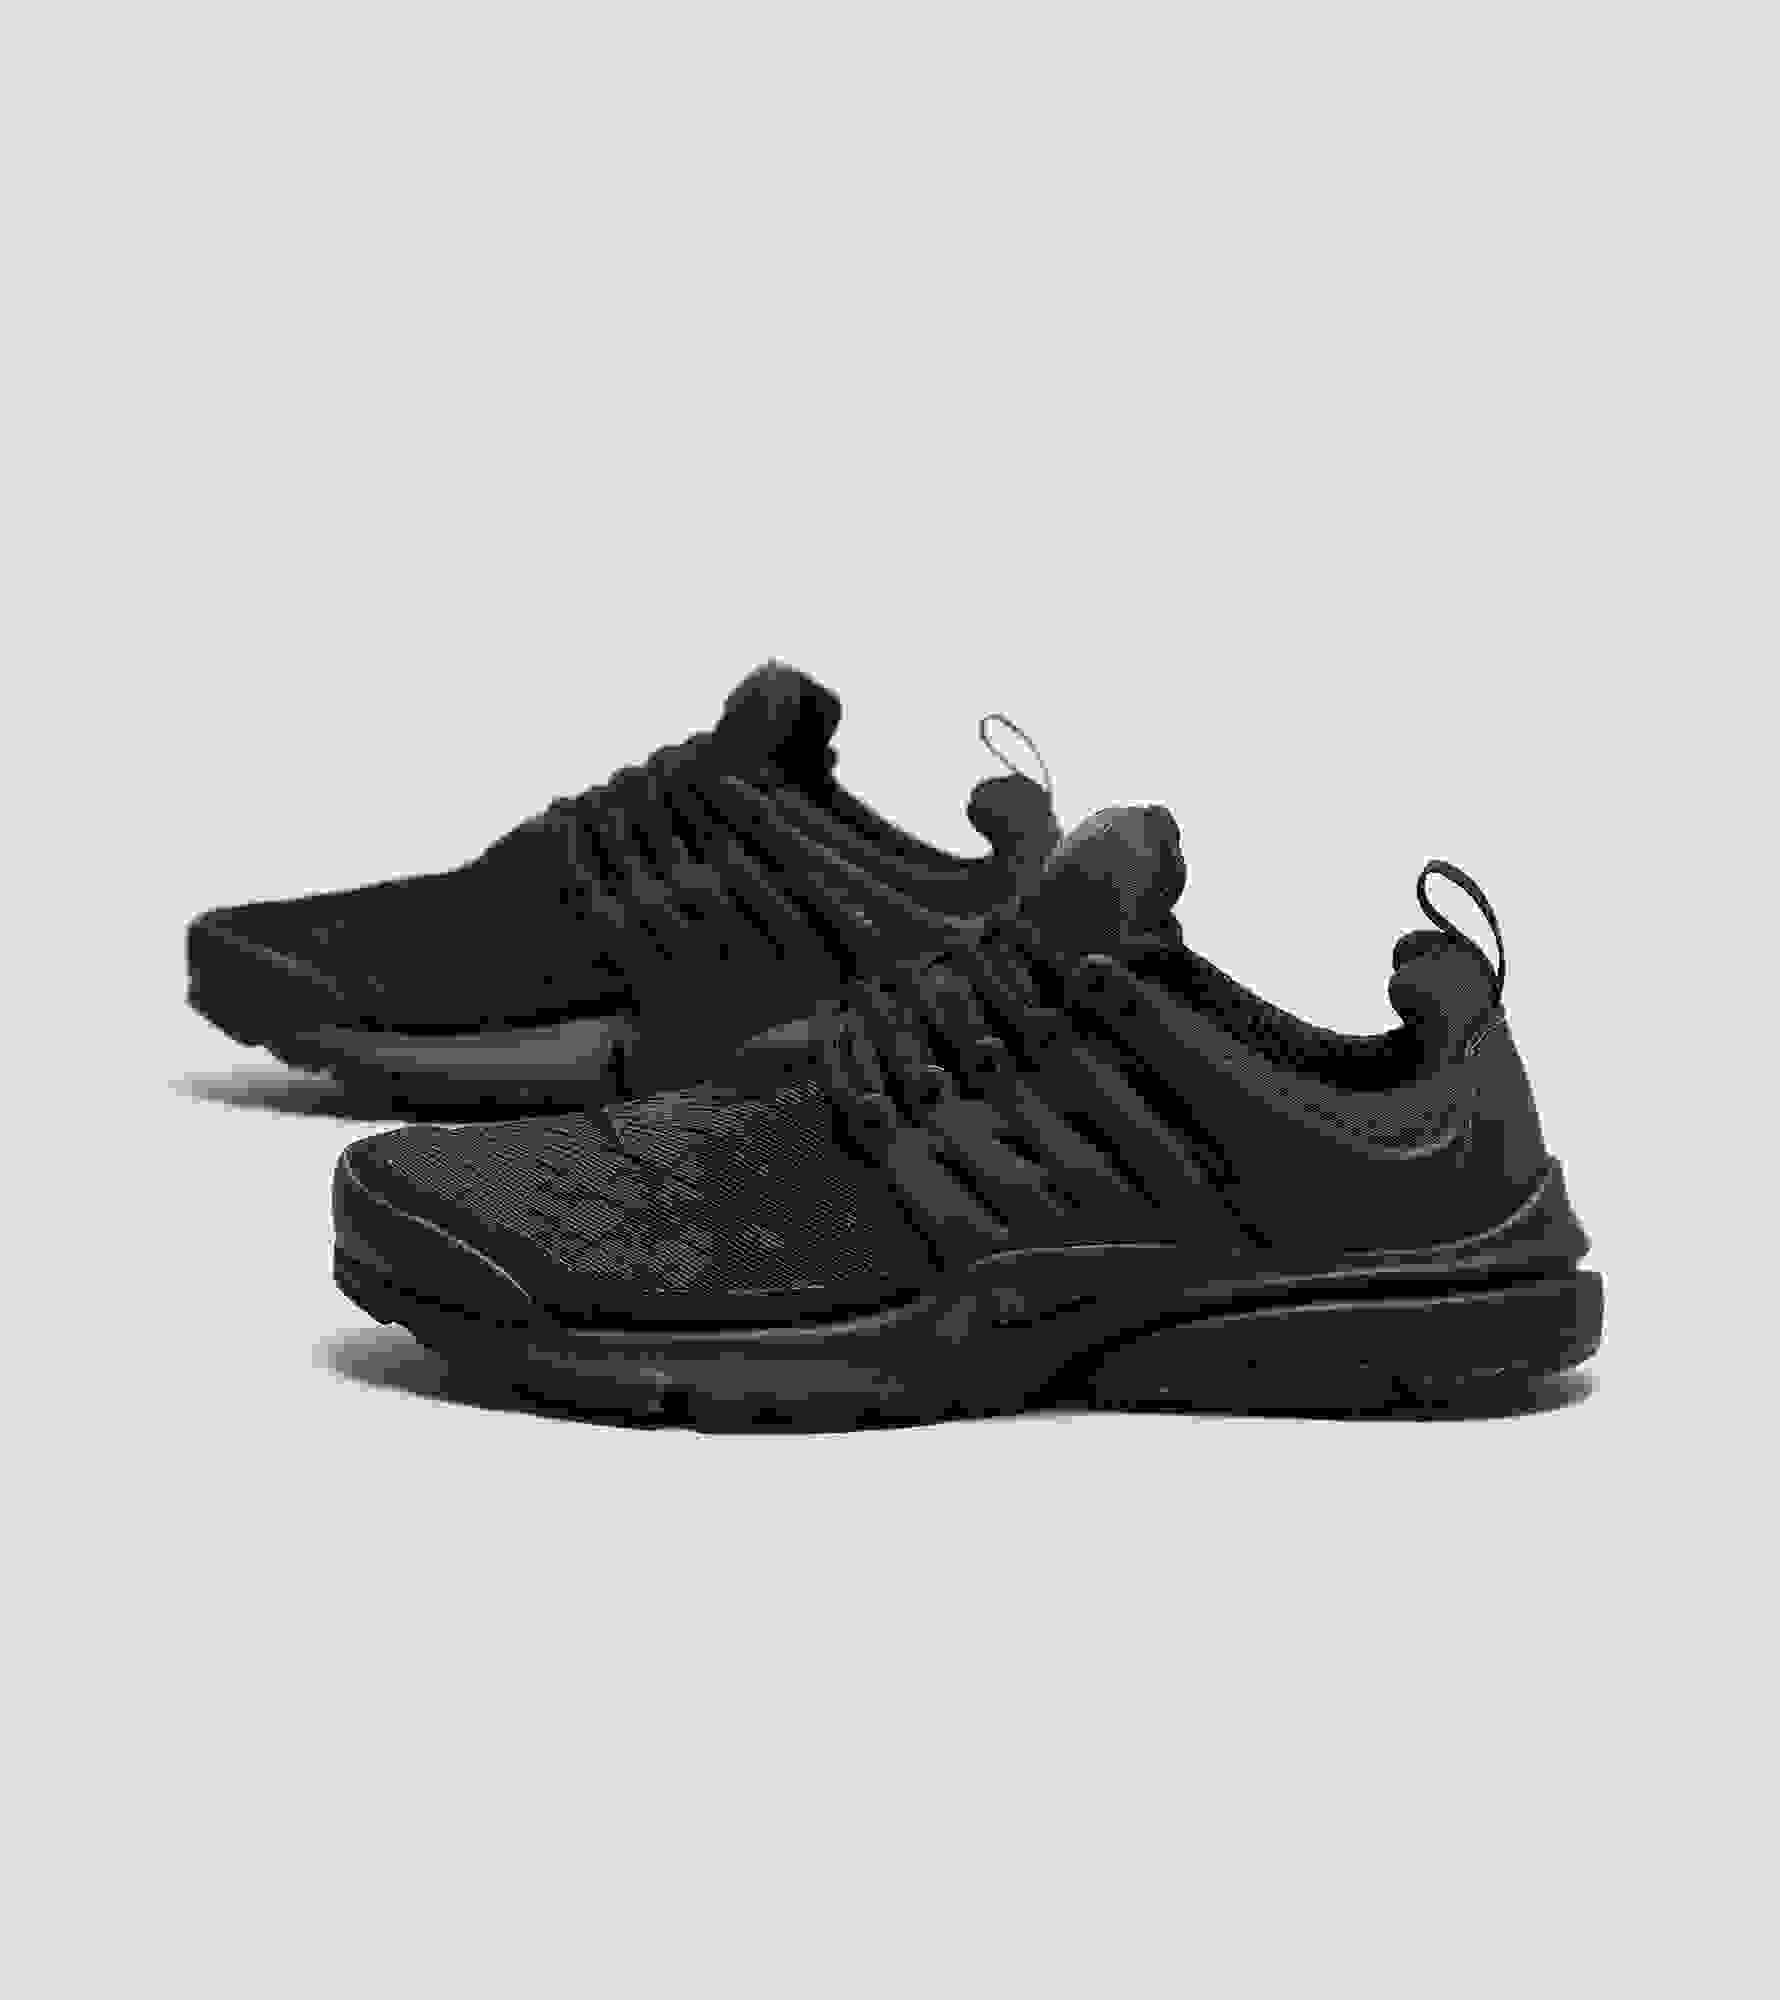 separation shoes 8241f bcc20 Nike air presto china mens air jordan v shoes red black. But you re going  to have to wait for that explanation because I think Sam is hurt worse than  we ...